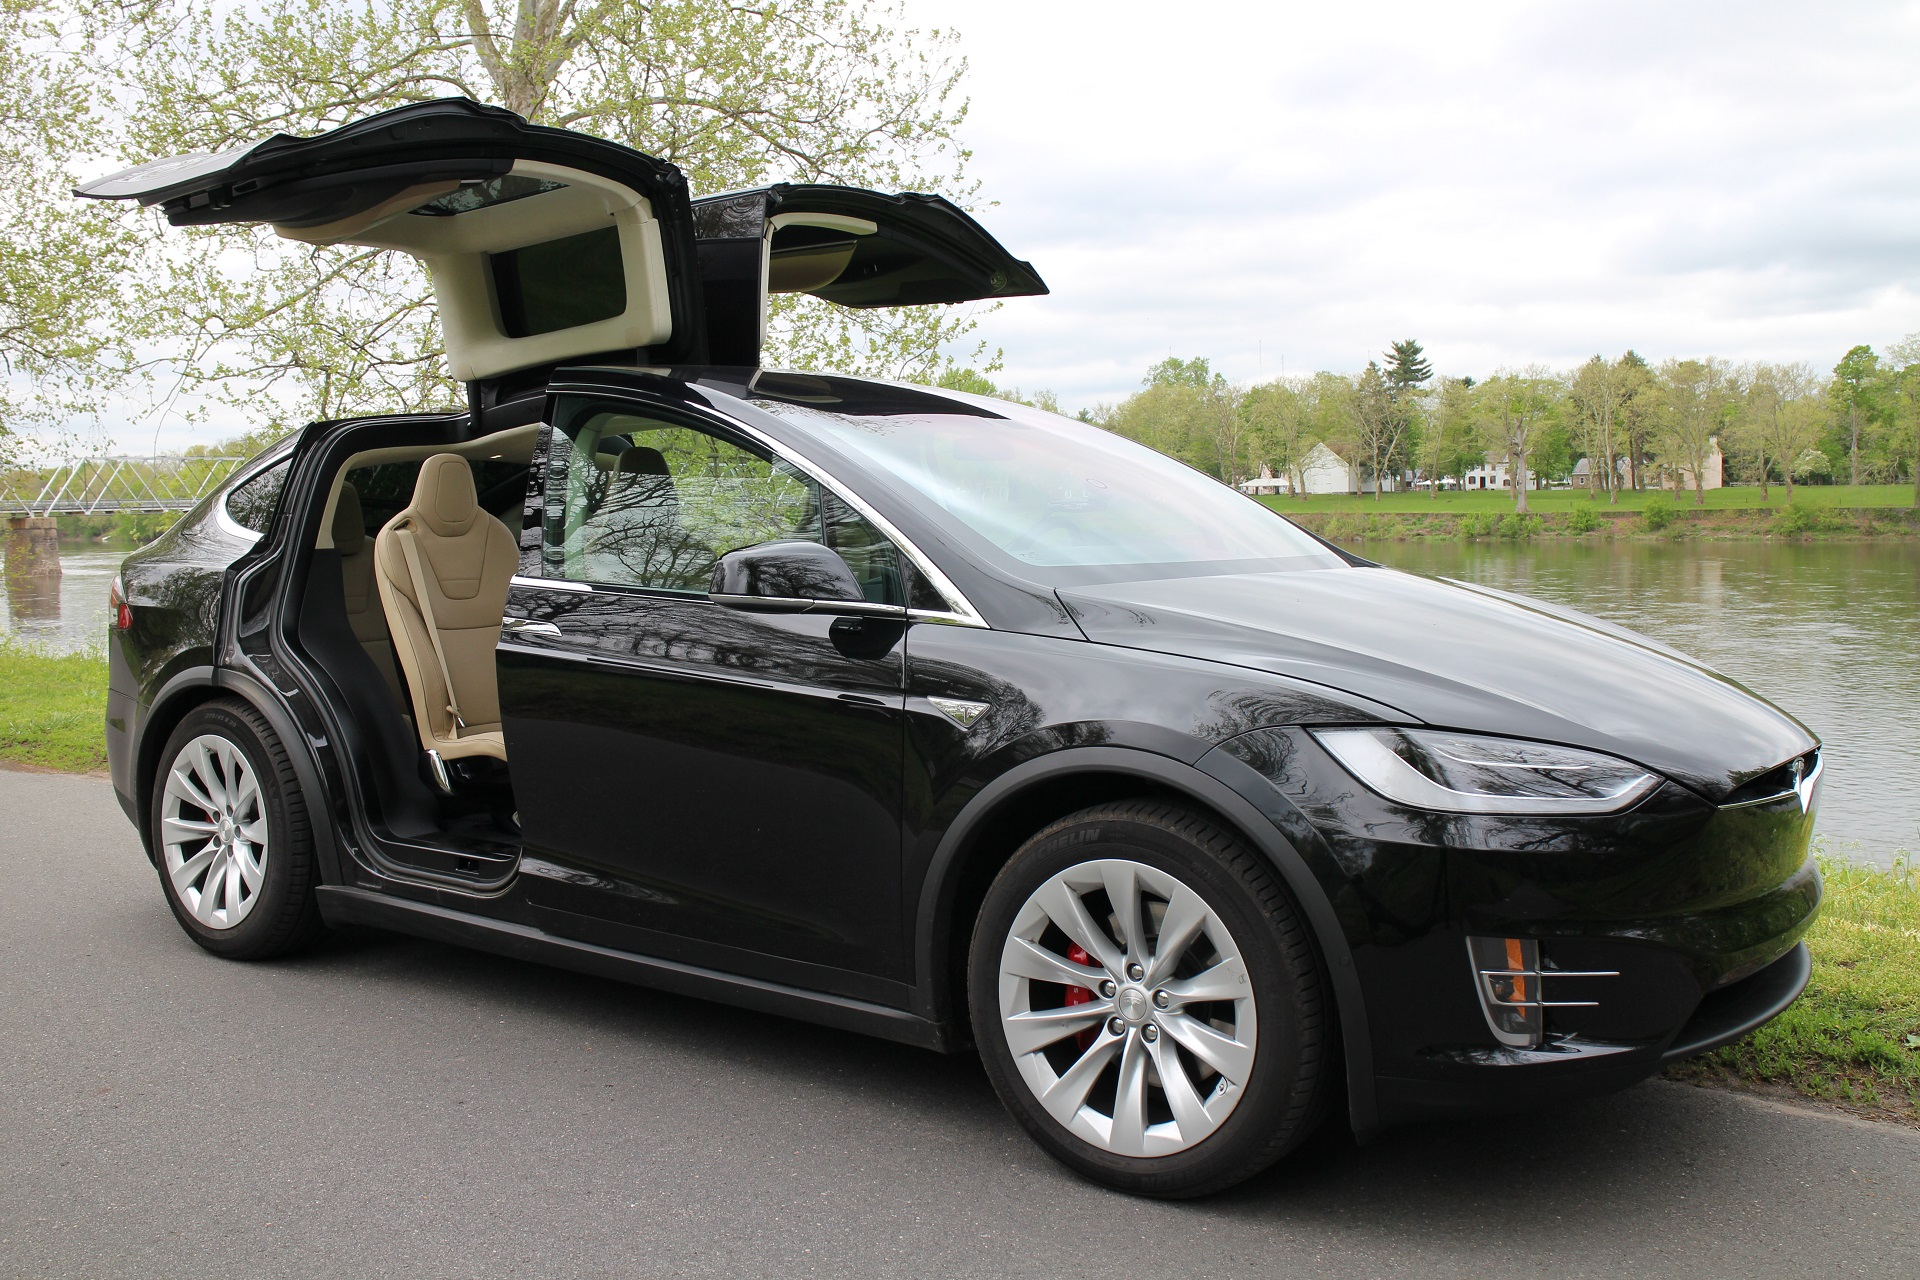 Tesla Y Image: So What Happened To Tesla Model X Electric SUV Sales, Anyway?